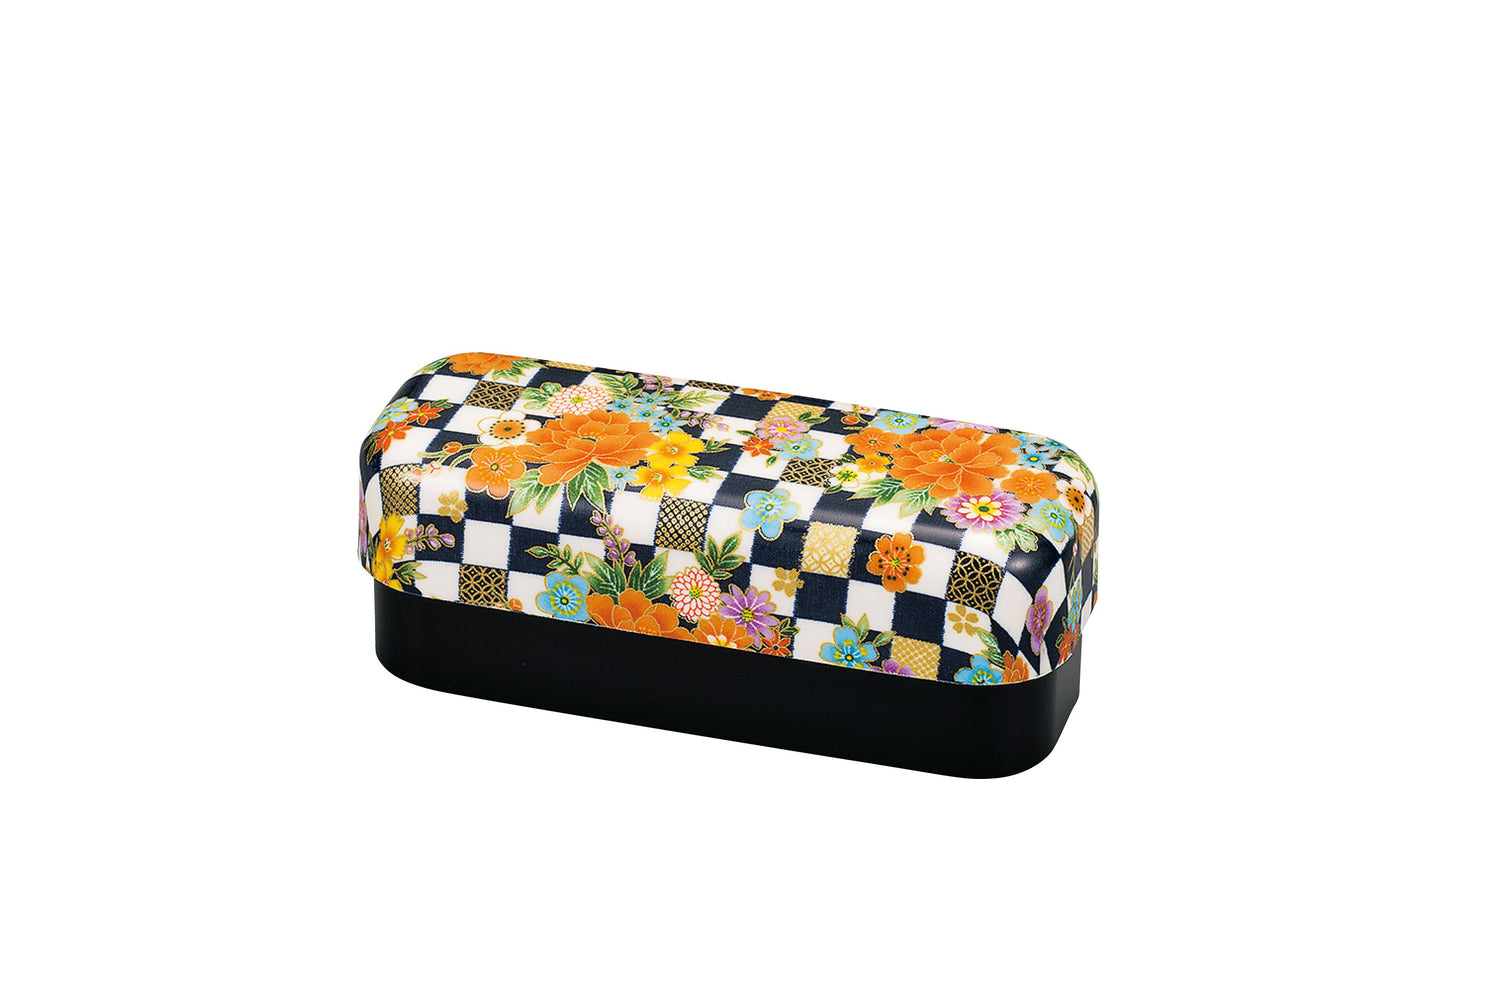 Ichimatsu Flower Bento Box Slim Navy by Hakoya - Bento&co Japanese Bento Lunch Boxes and Kitchenware Specialists